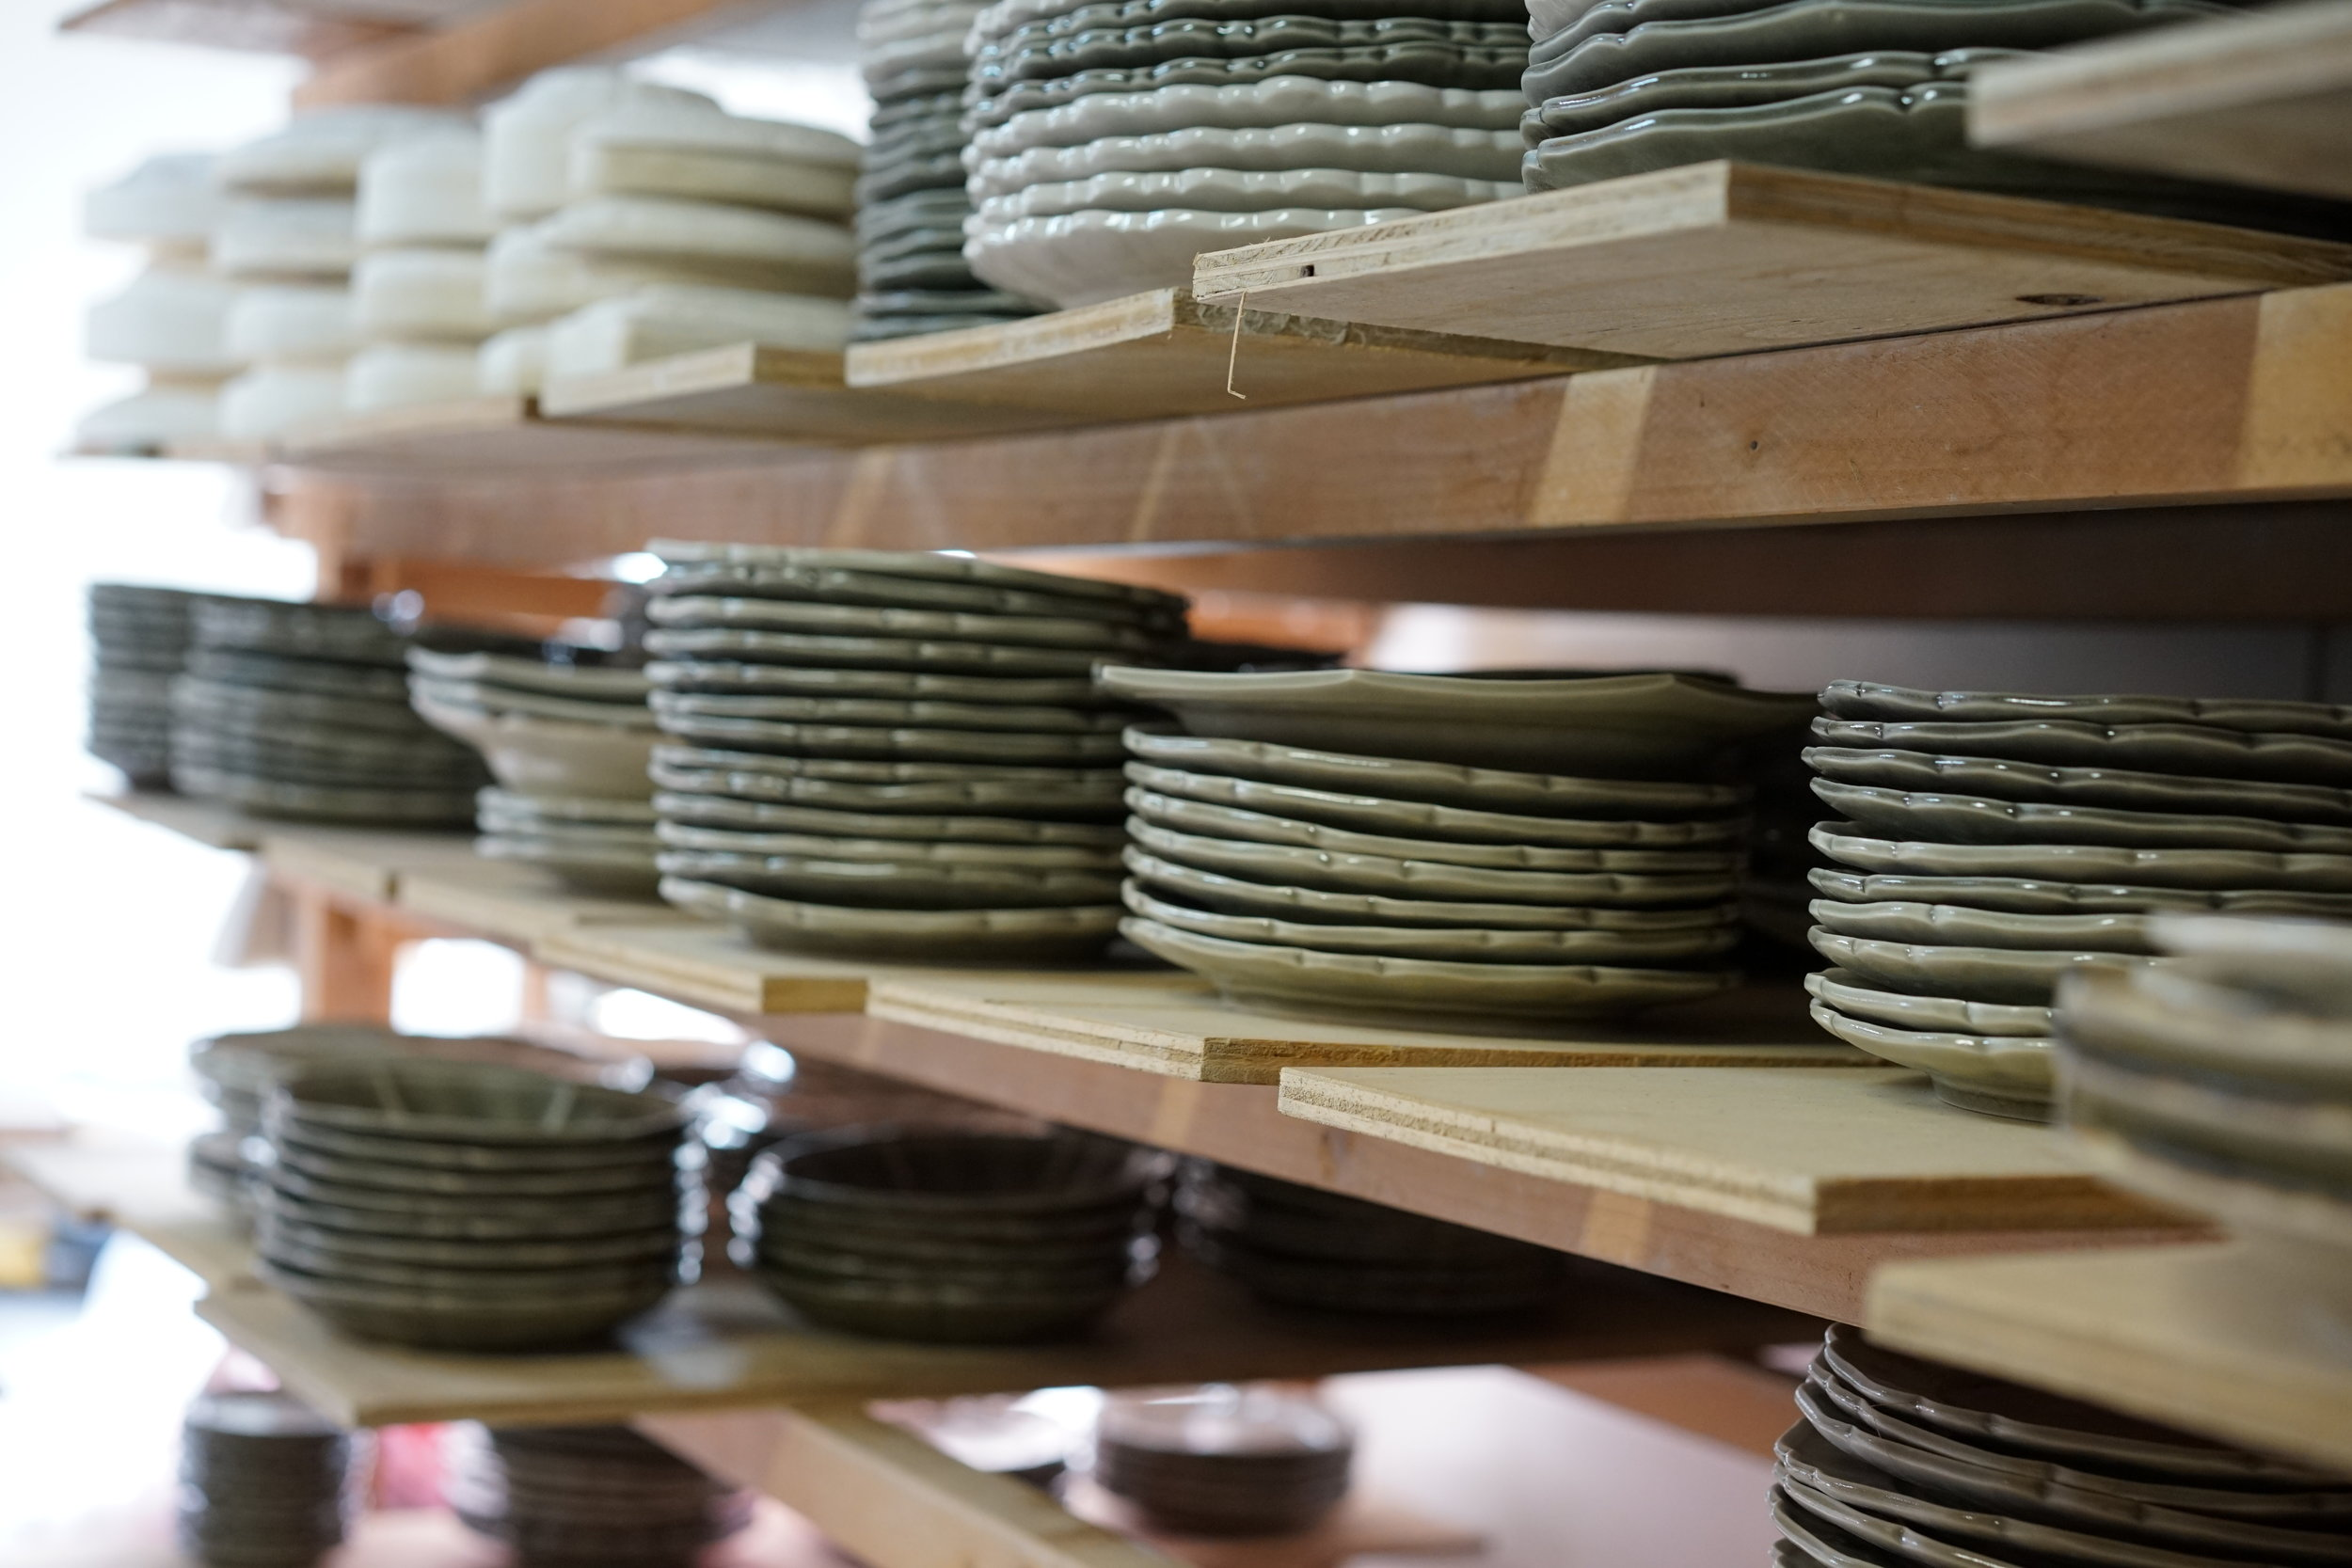 Shelves filled with motif plates